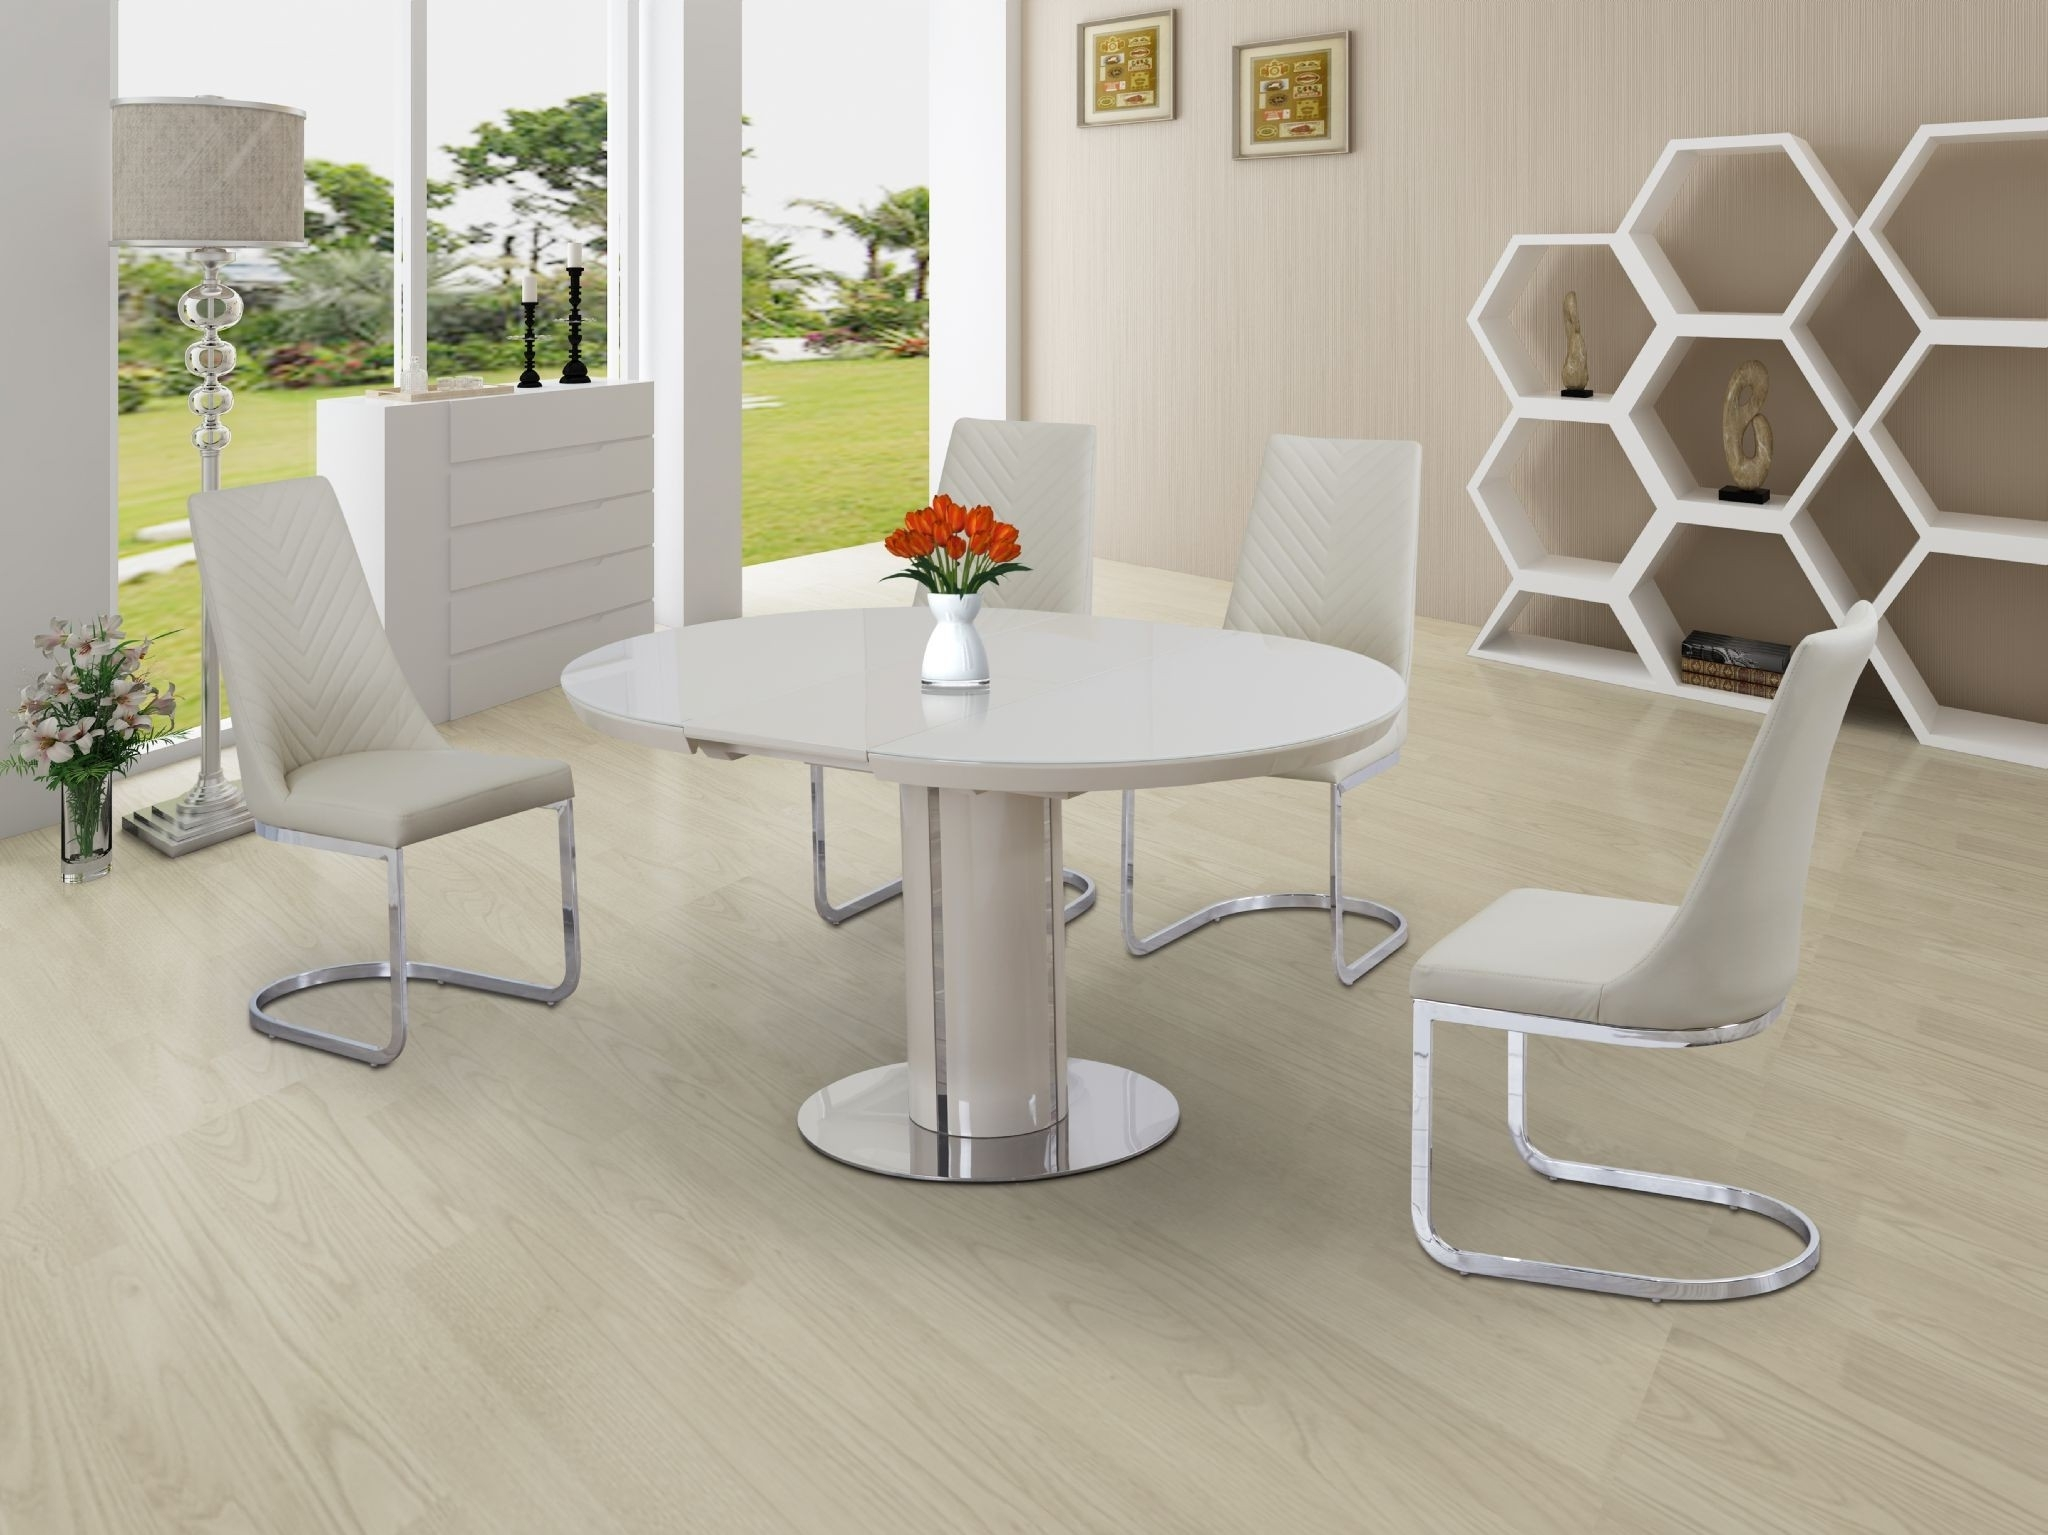 Buy Annular Cream High Gloss Extending Dining Table For Latest Extending White Gloss Dining Tables (View 18 of 25)